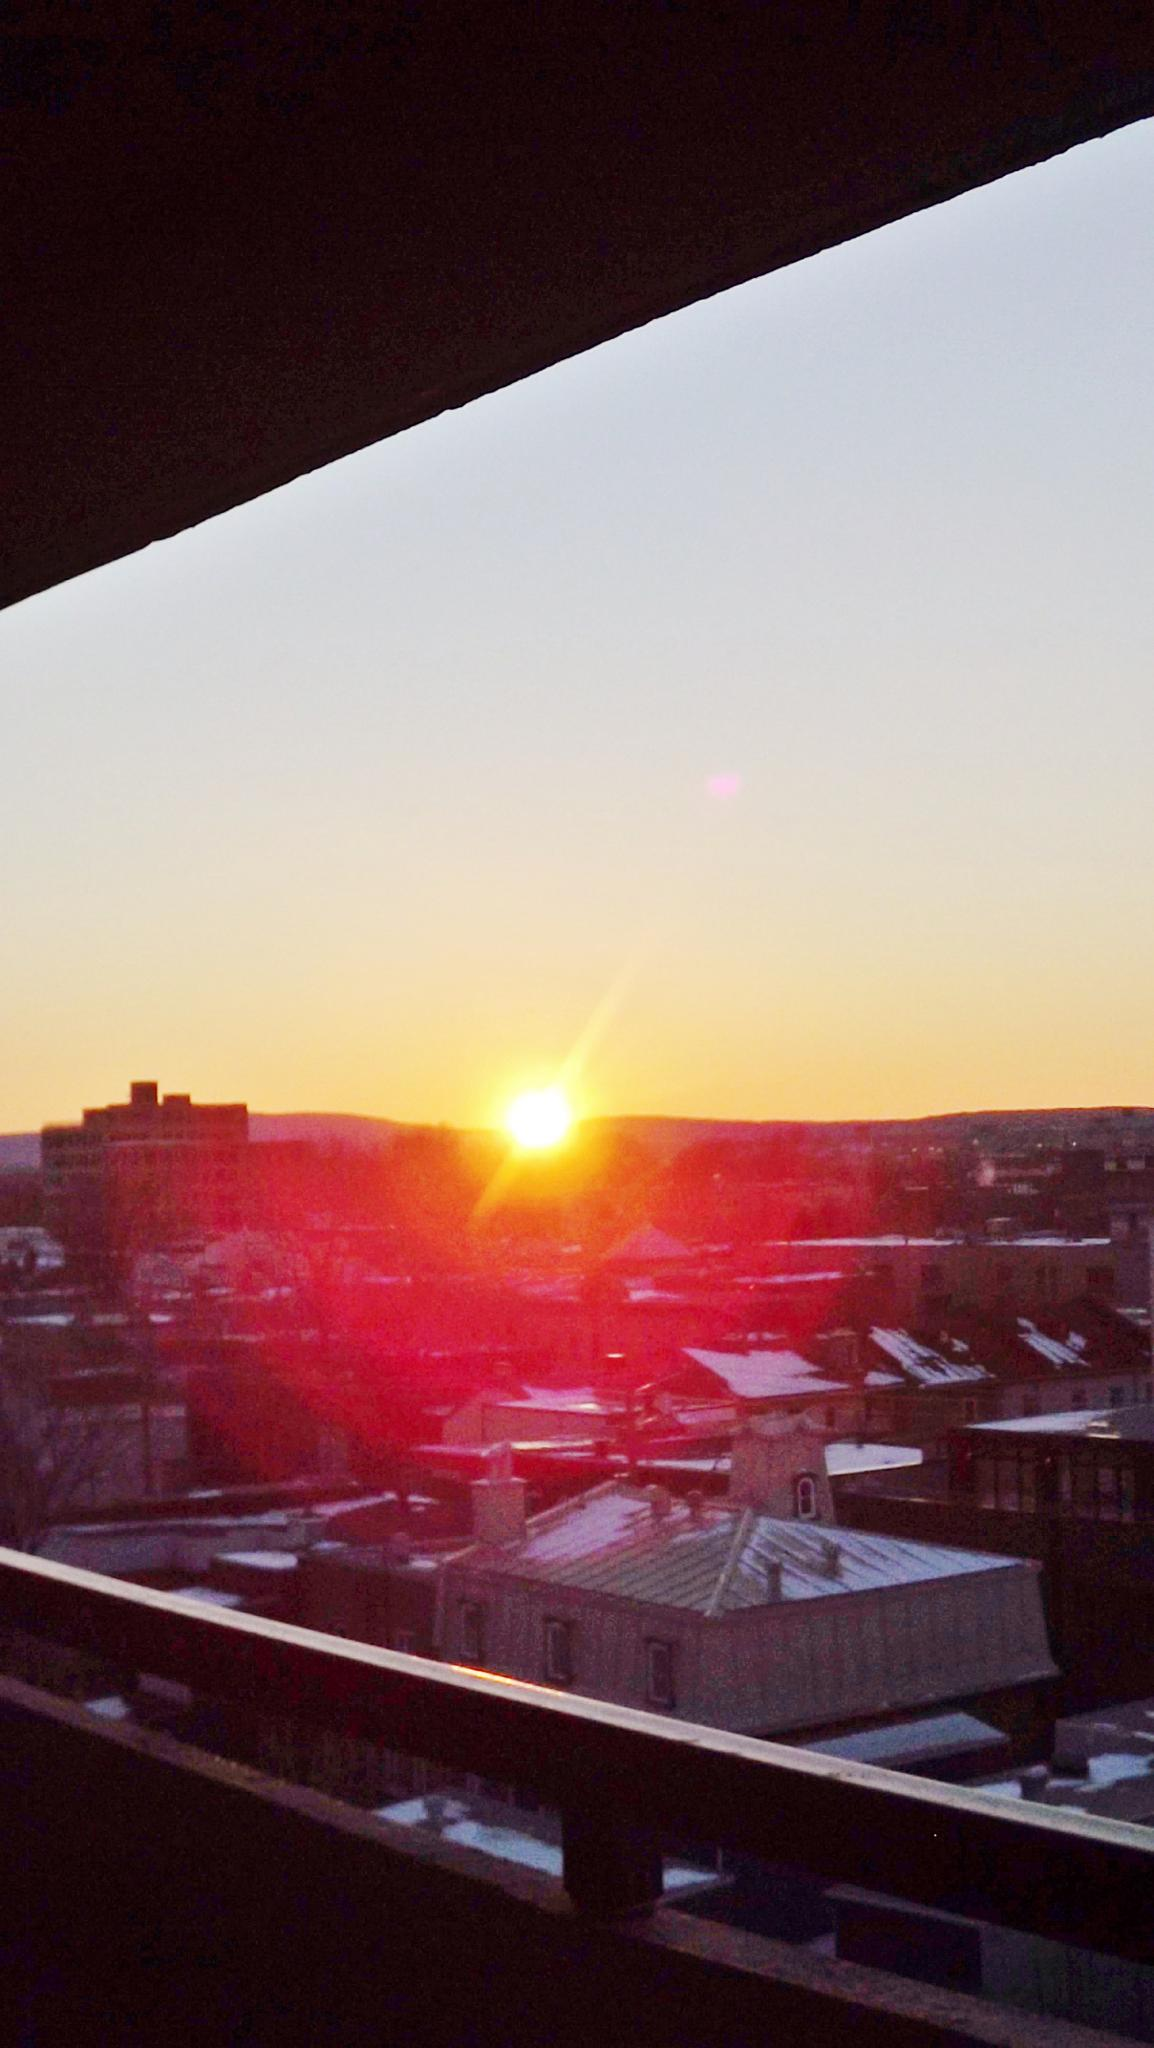 Quebec city easter sunset spring time by real.michaud.5036